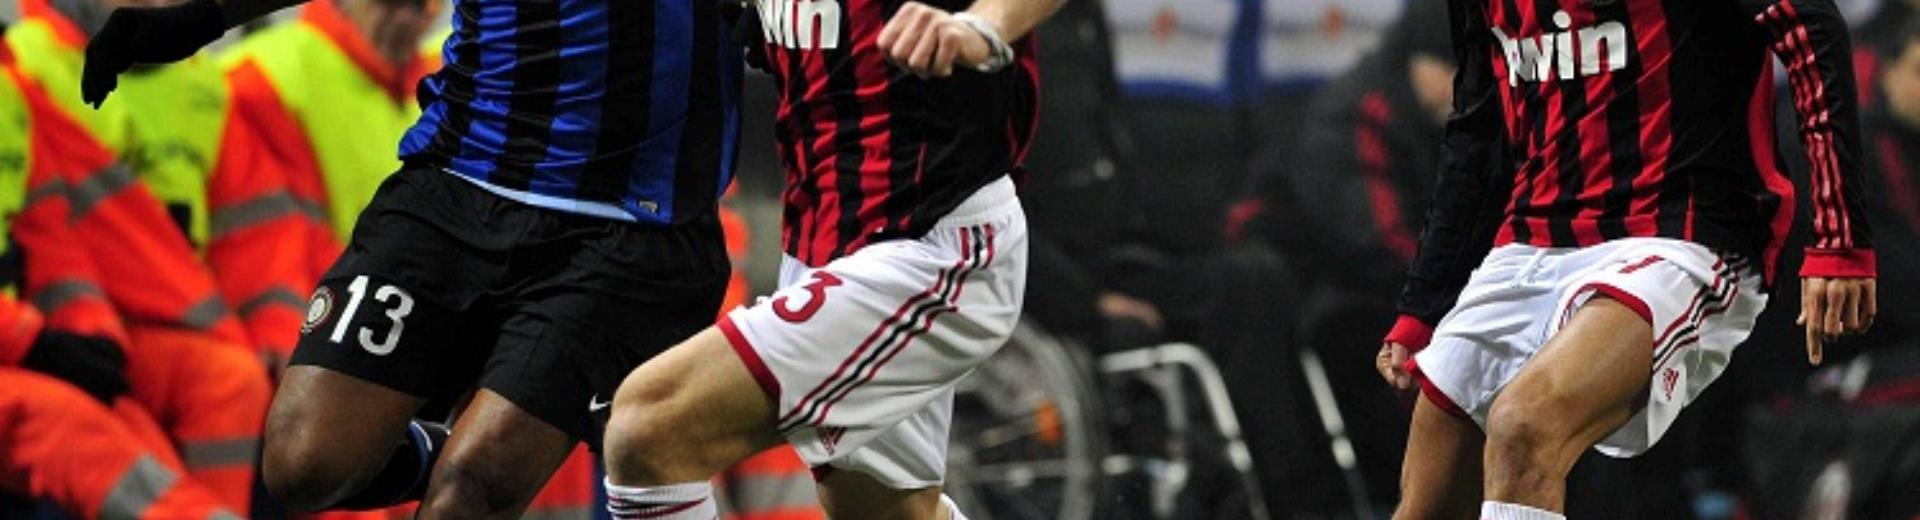 San Siro is just minutes from the Best Western Hotel Astoria, don't miss the Derby della Madonnina!